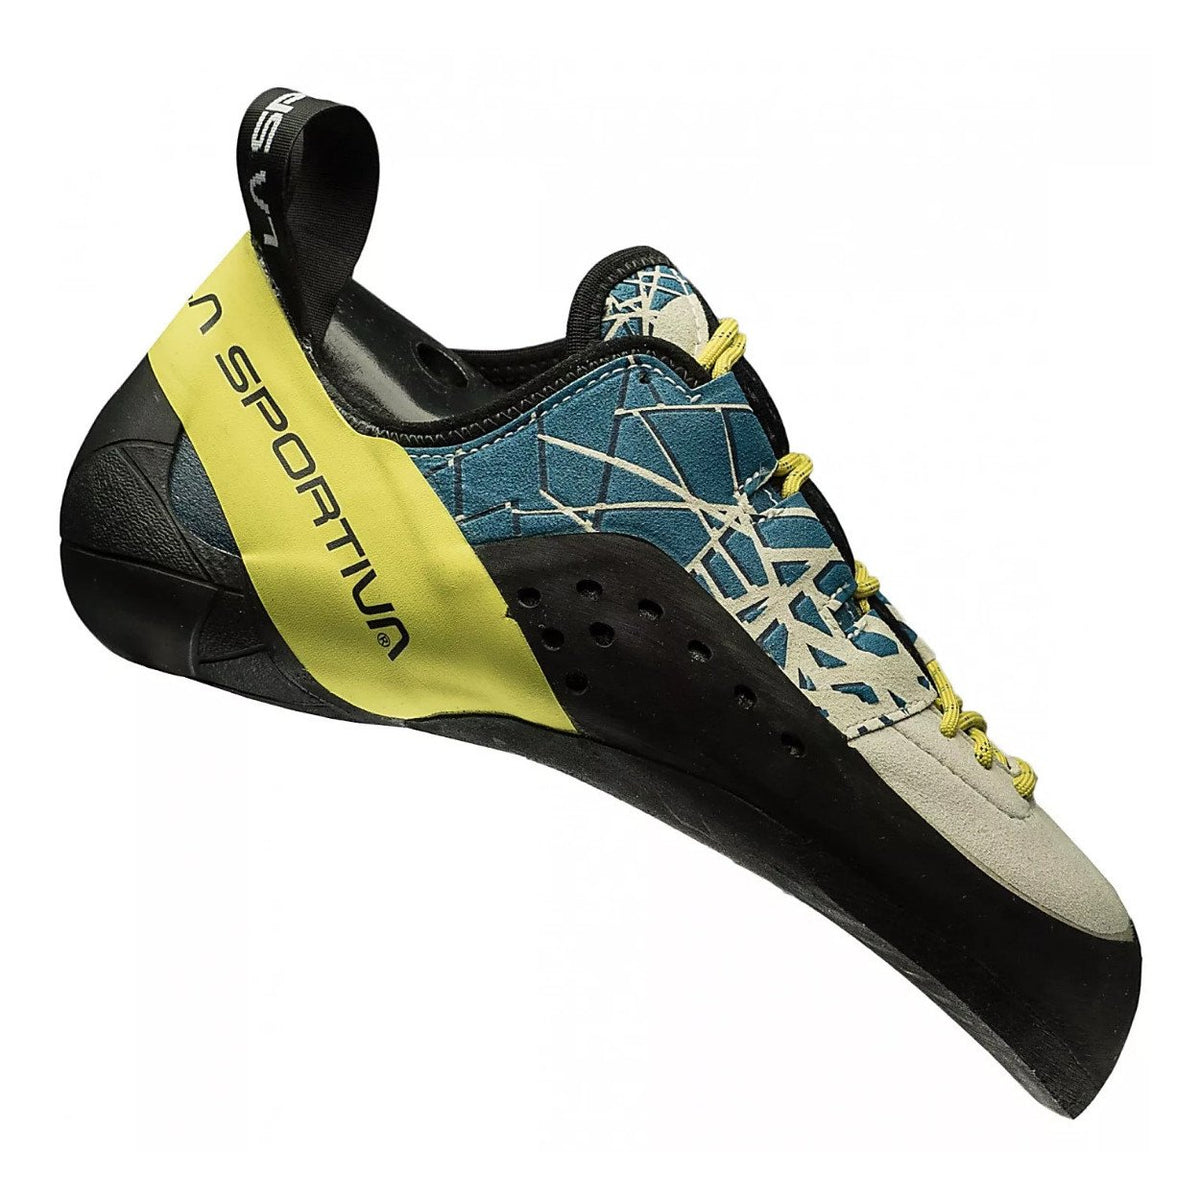 La Sportiva Kataki climbing shoe, outside side profile